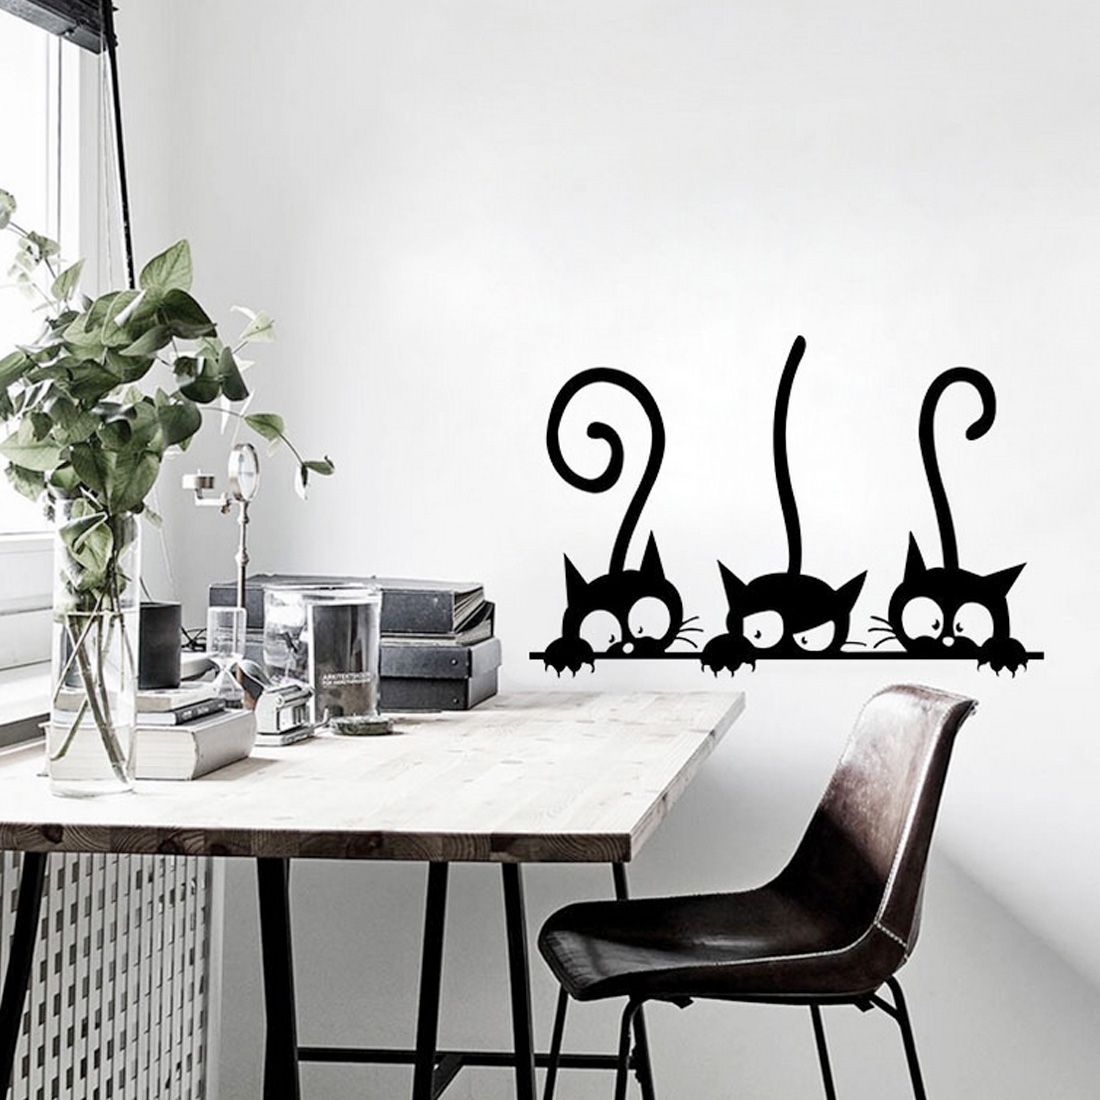 Three Funny Cats Animal Wall Sticker Household Room PVC Window Decals Mural Removable 3D Wall Stickers DIY Decoration Home Decor(China)